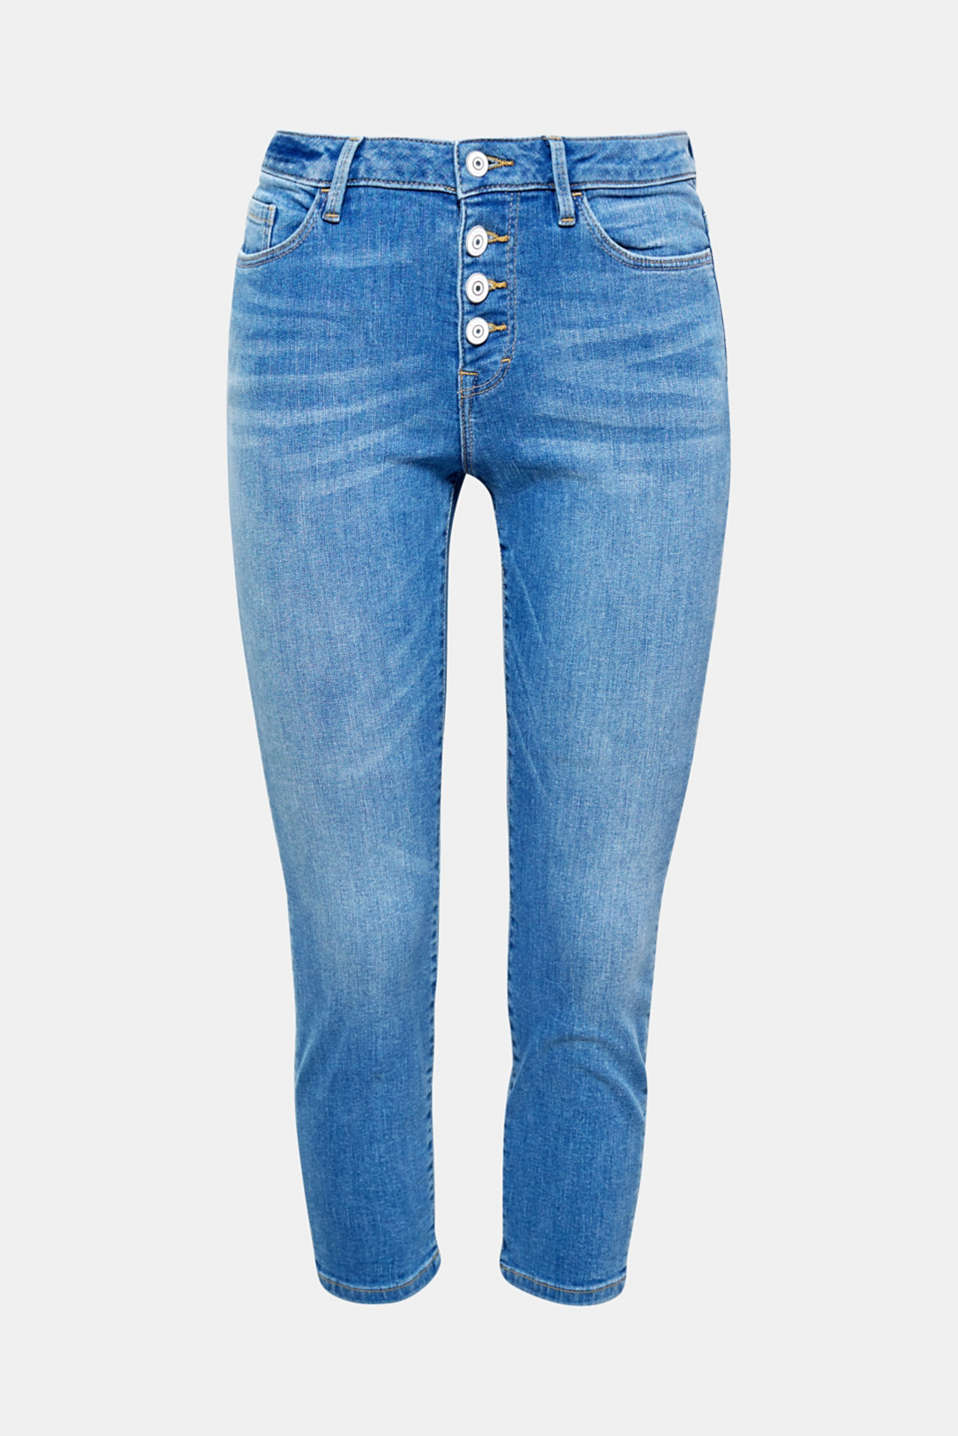 The striking washed-out finish, visible button fly and summery 7/8 length round off the extraordinary look of these stretchy jeans.